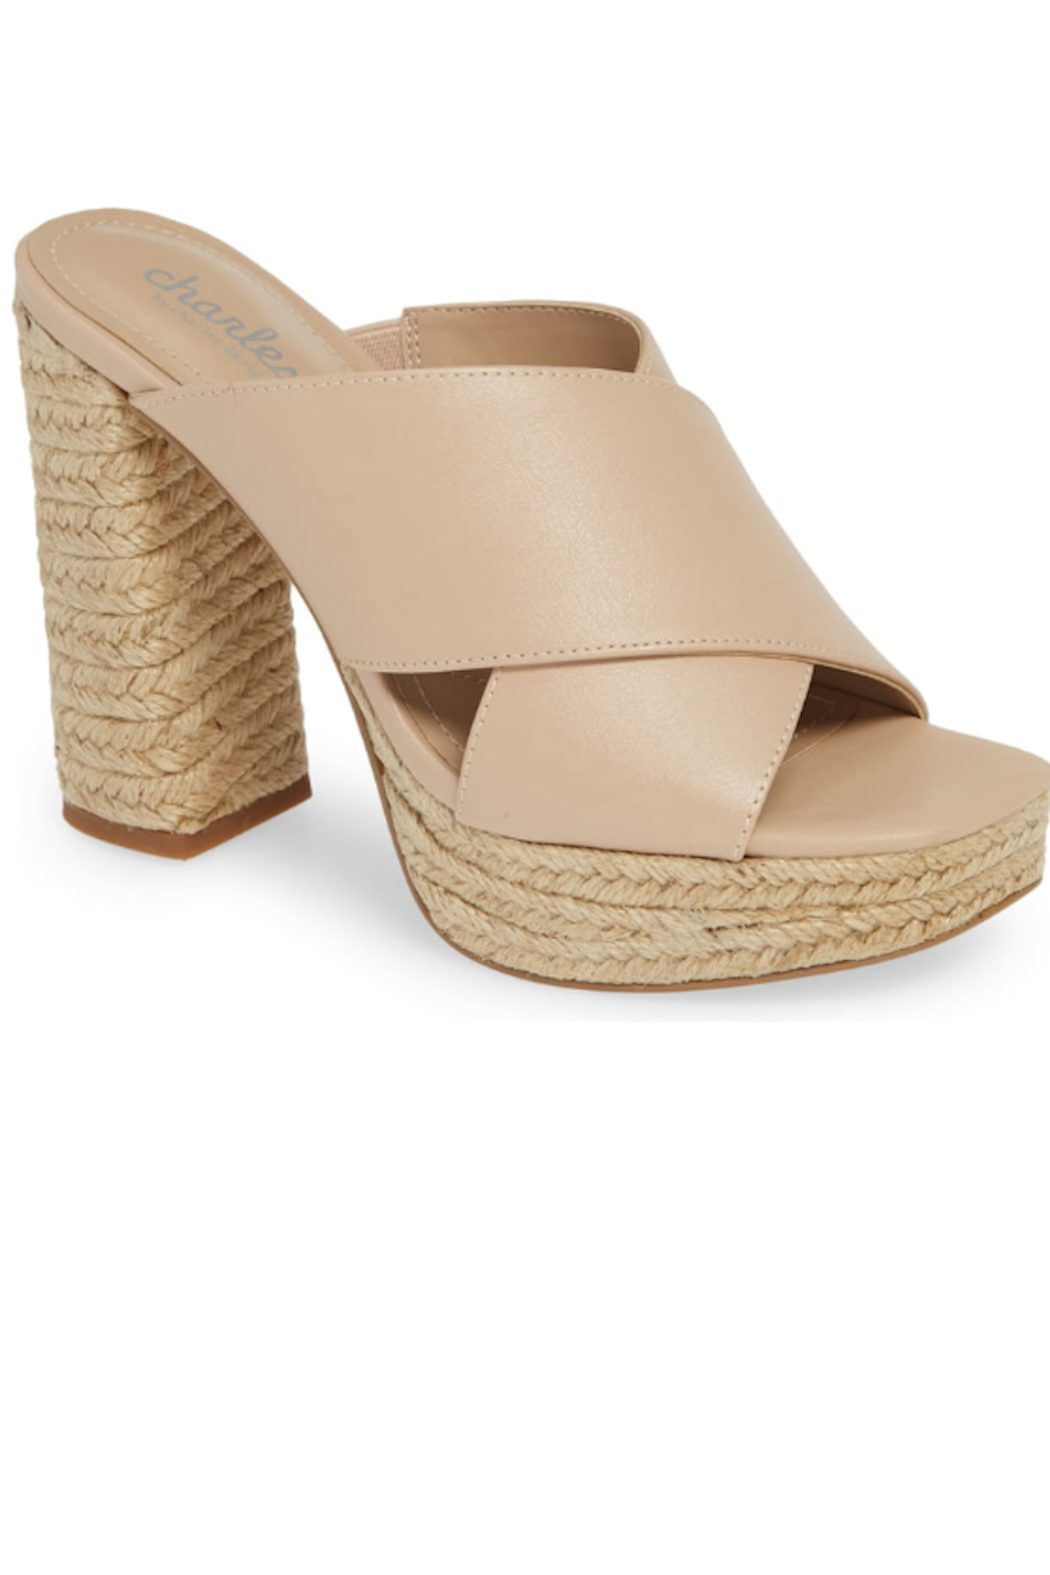 Charles David Index Chunky Heel - Front Cropped Image